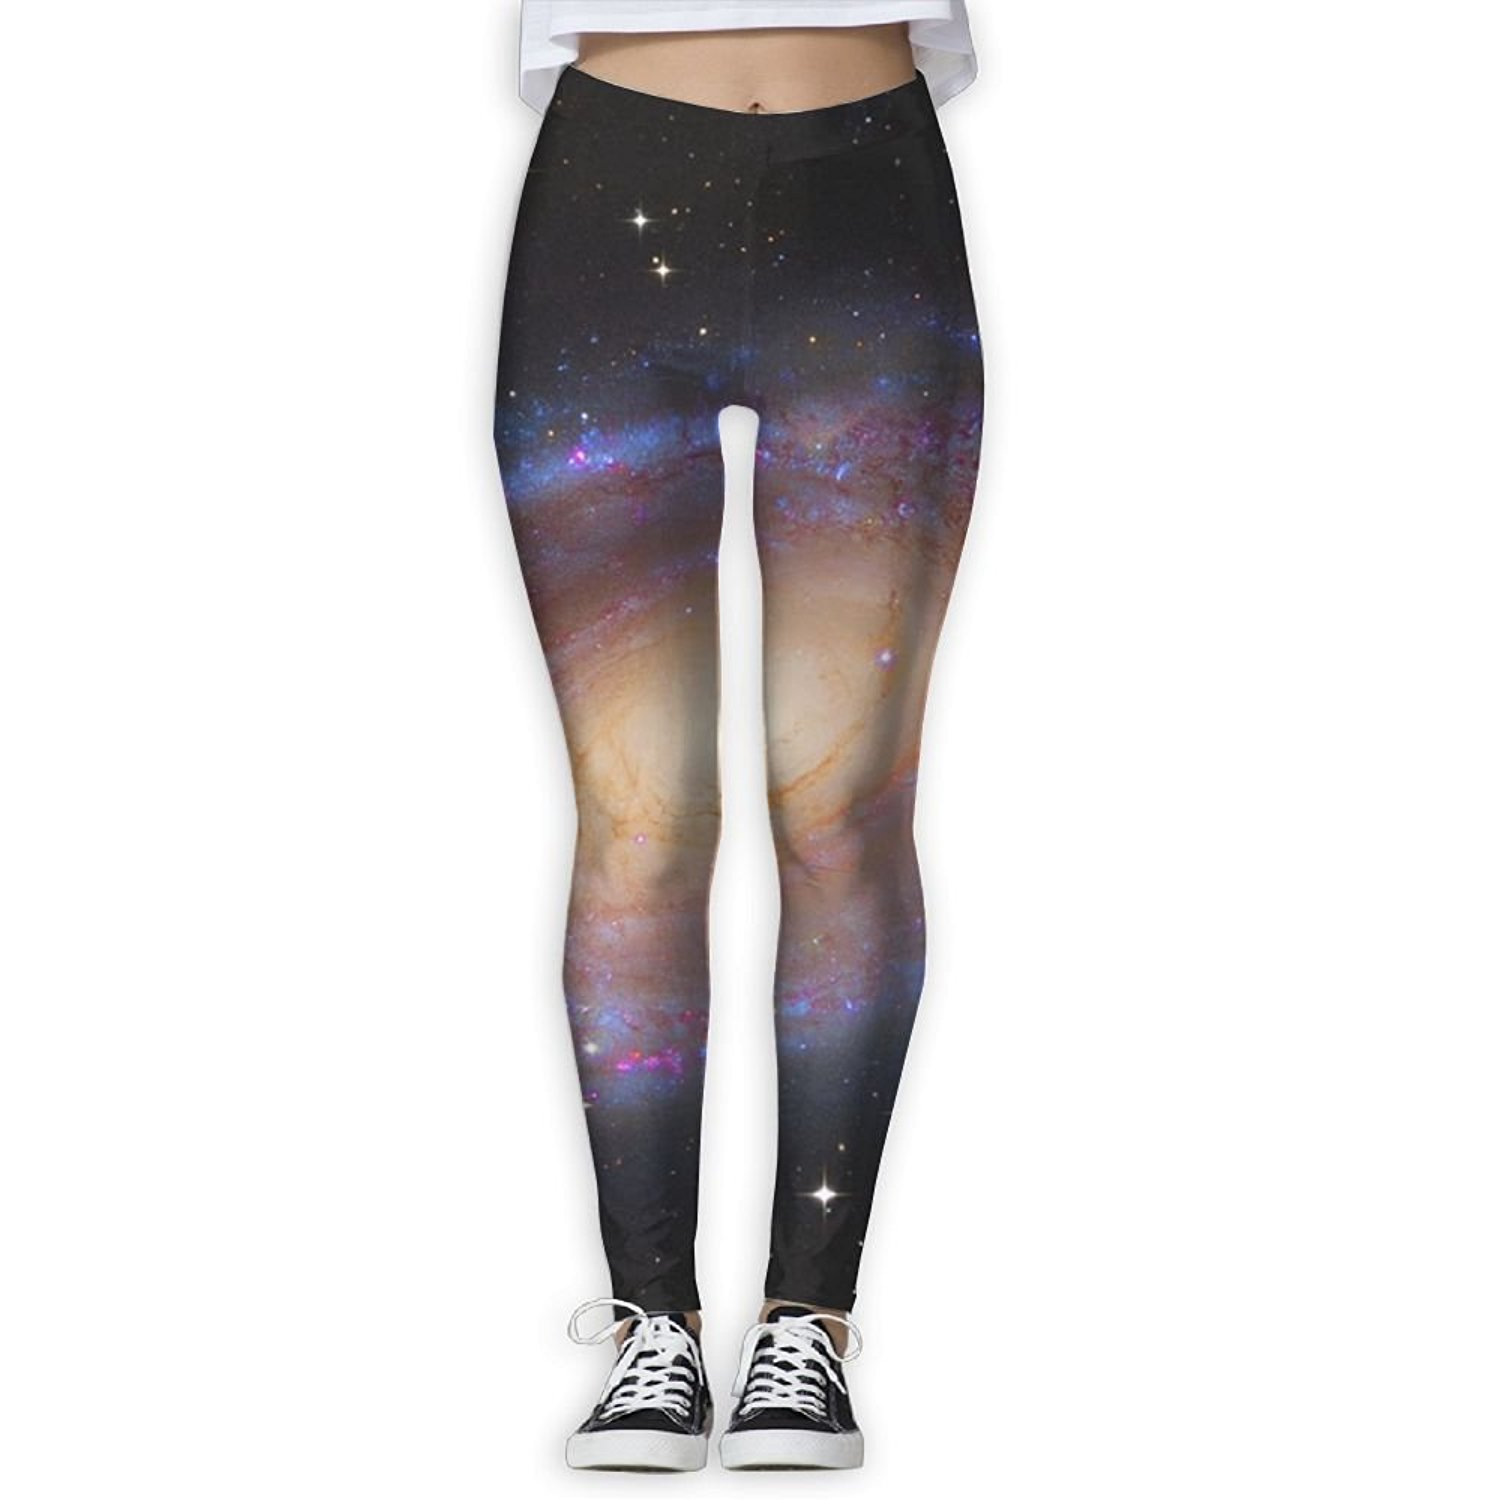 543f94d2f90ee Get Quotations · GHBDNK Galaxy Space Star Skins Yoga Pants for Women  Running Tights Women Leggings